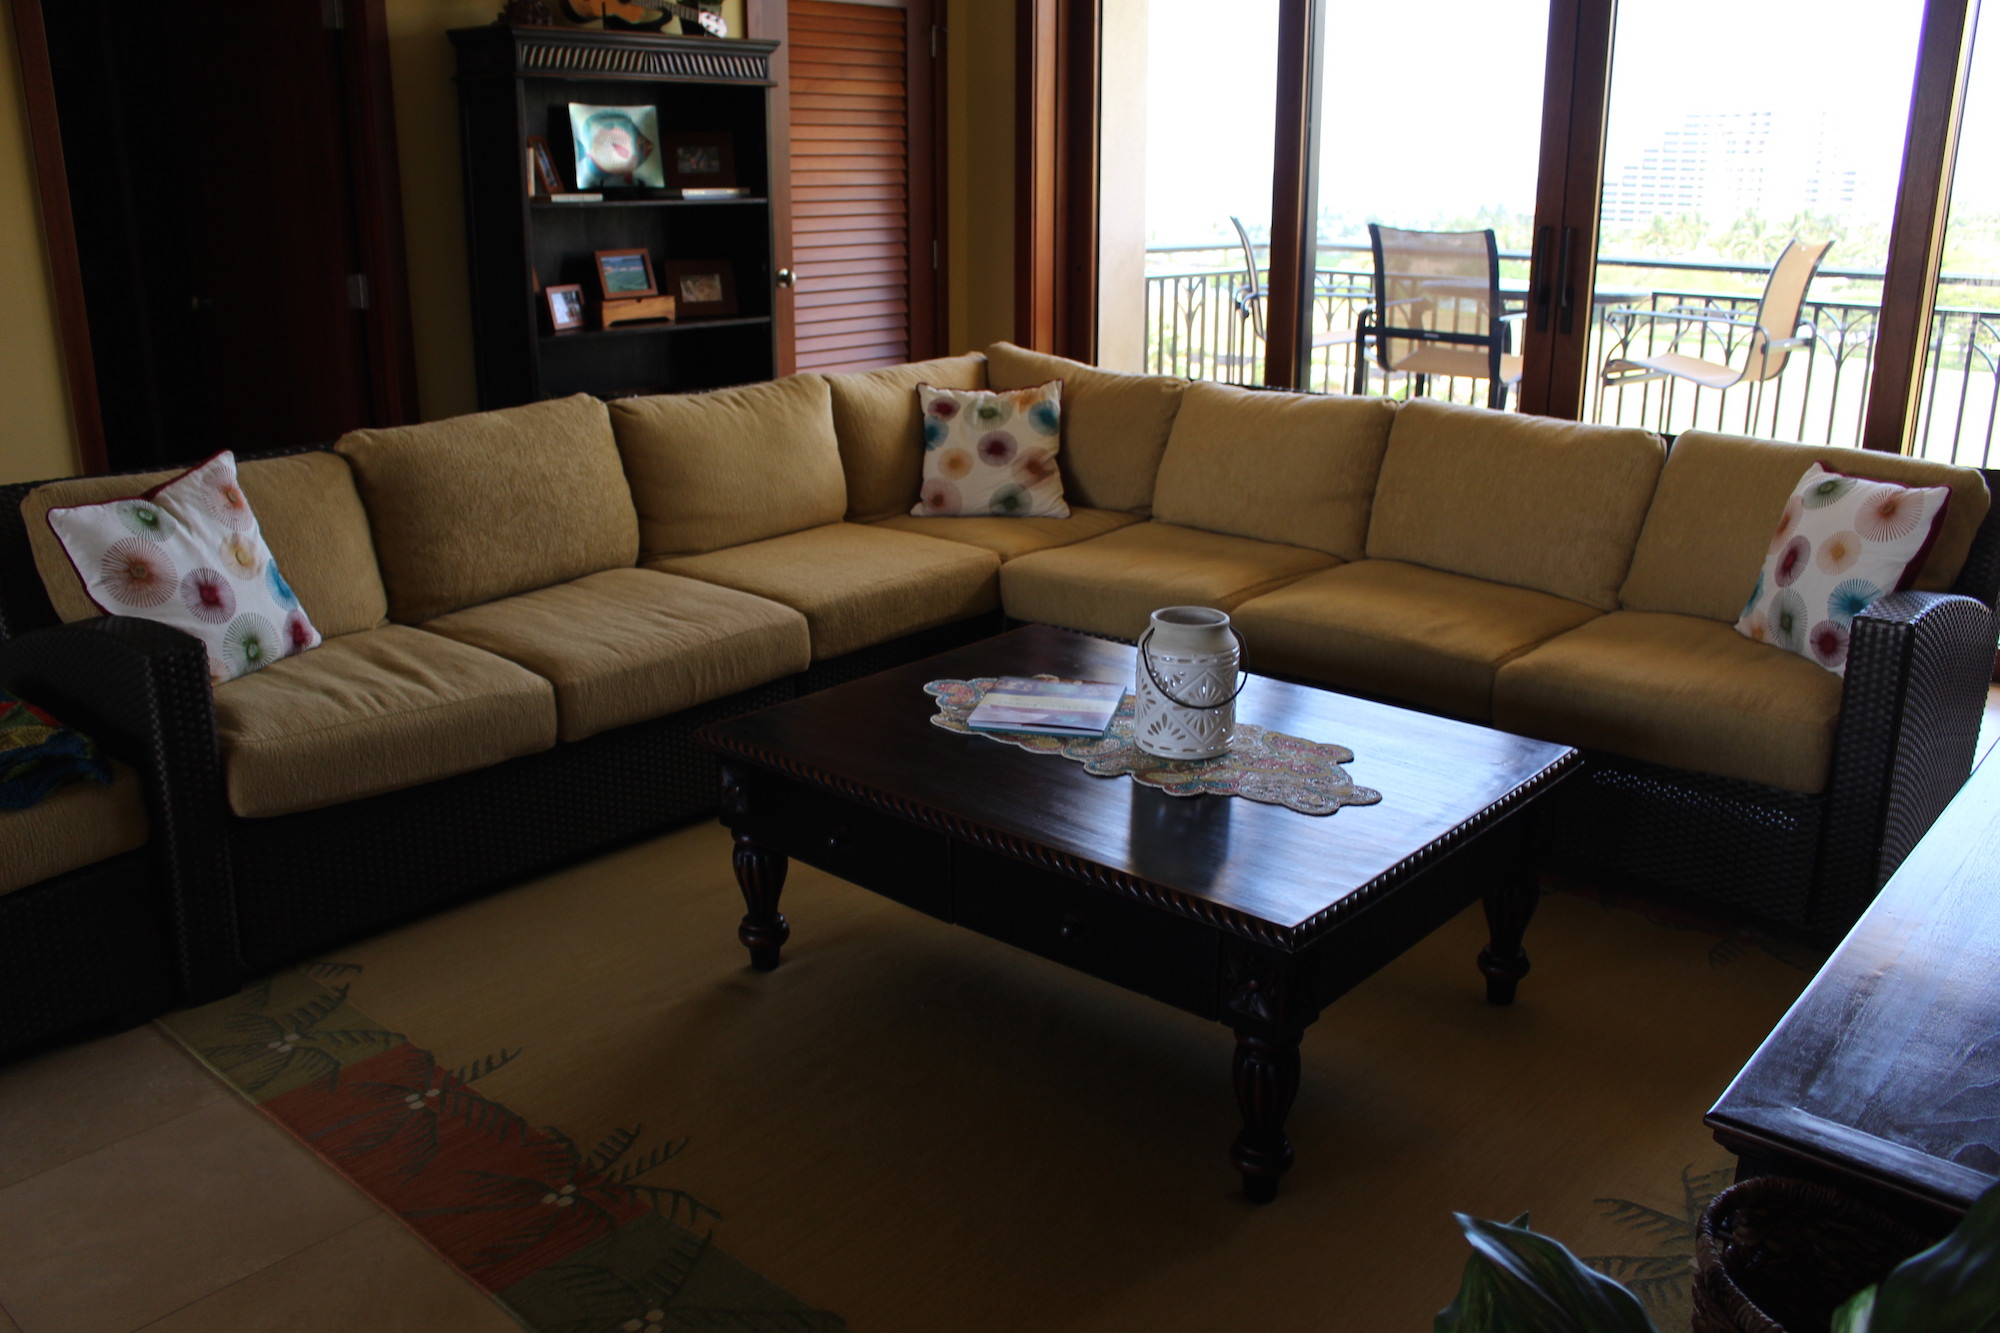 Brown jordan furniture modern leather upholstered tufted for Brown jordan tamiami chaise